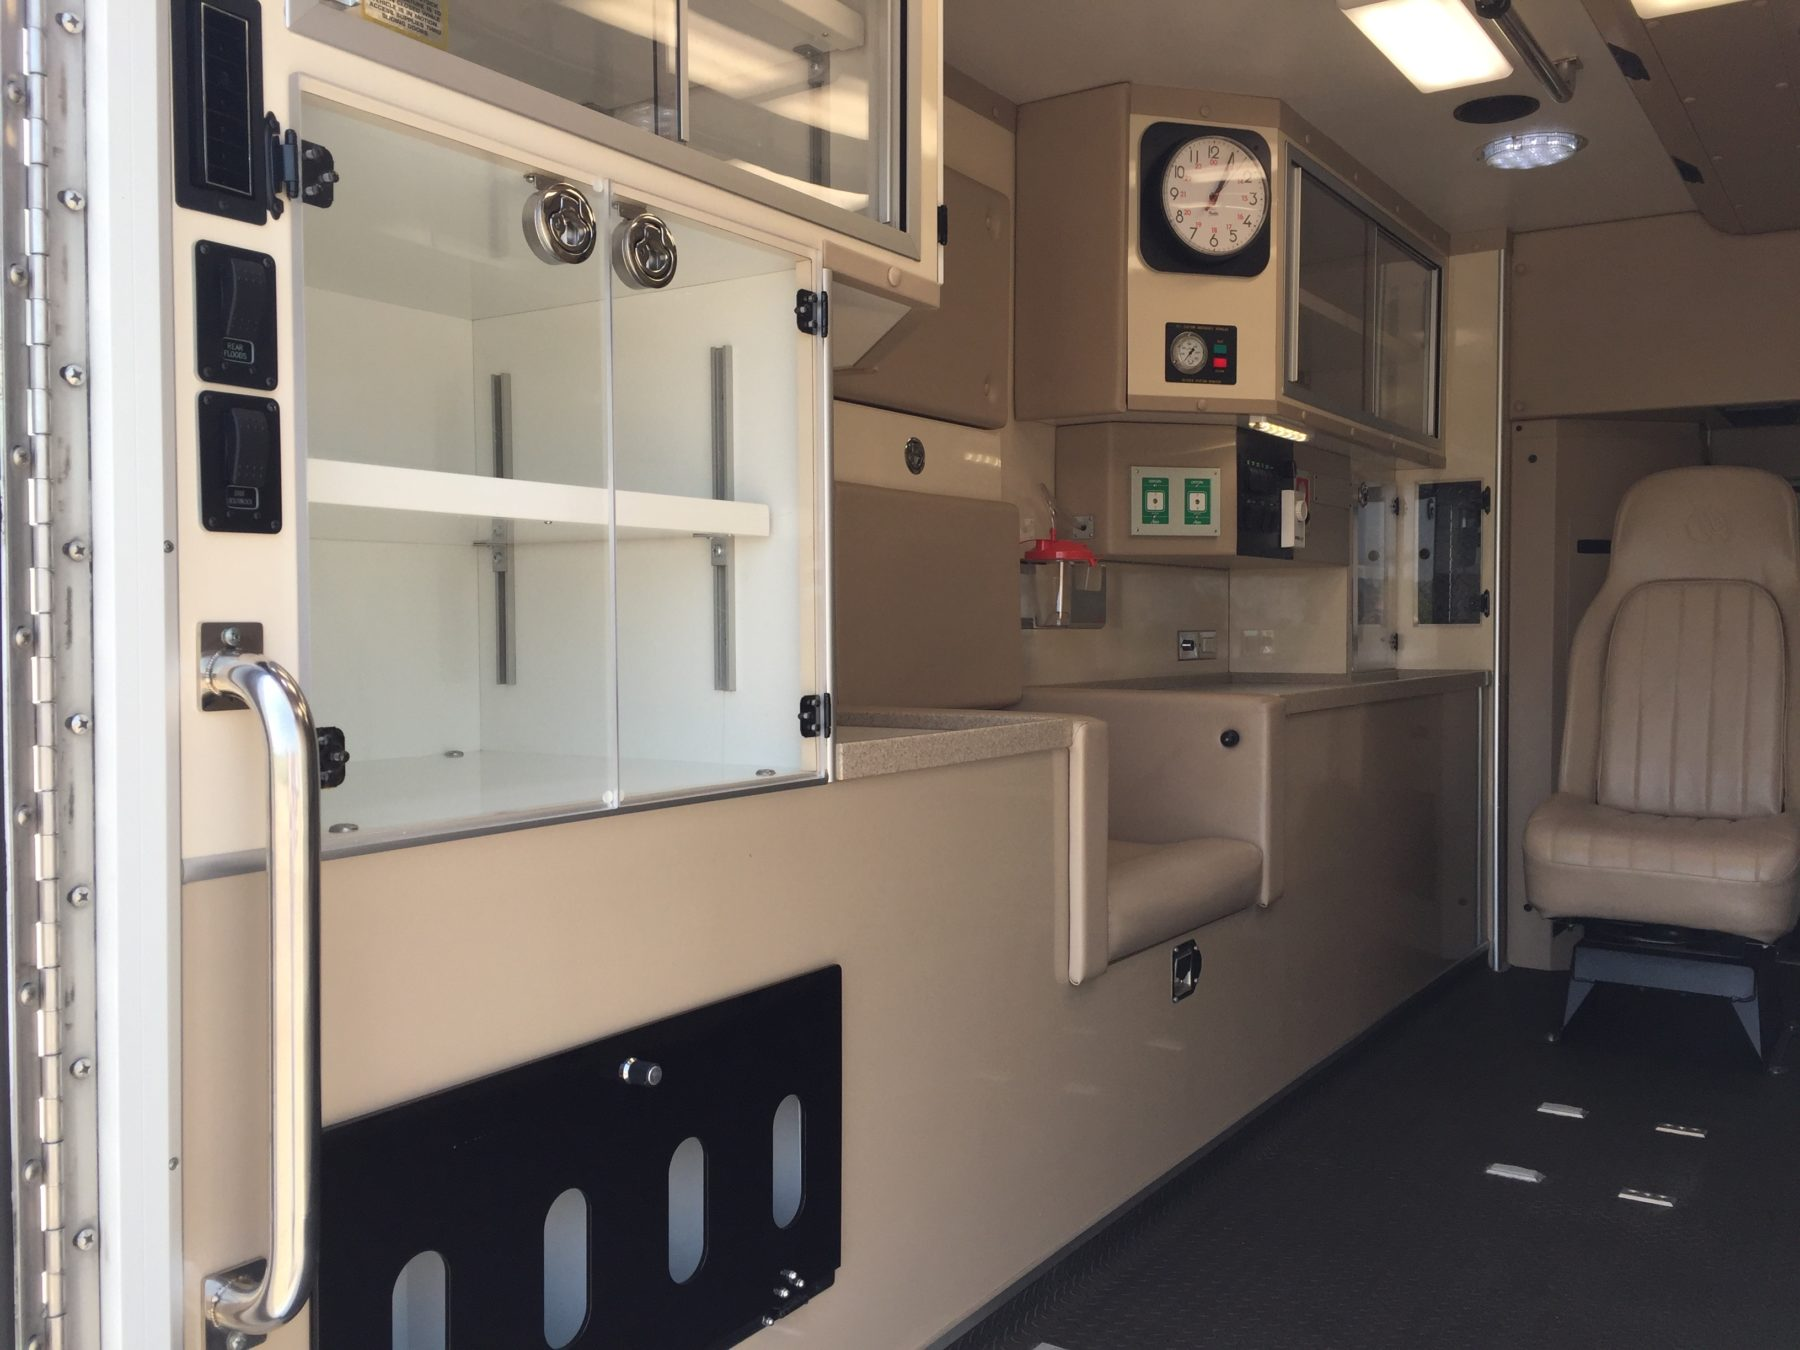 2009 Chevrolet G4500 Type 3 Ambulance For Sale – Picture 12